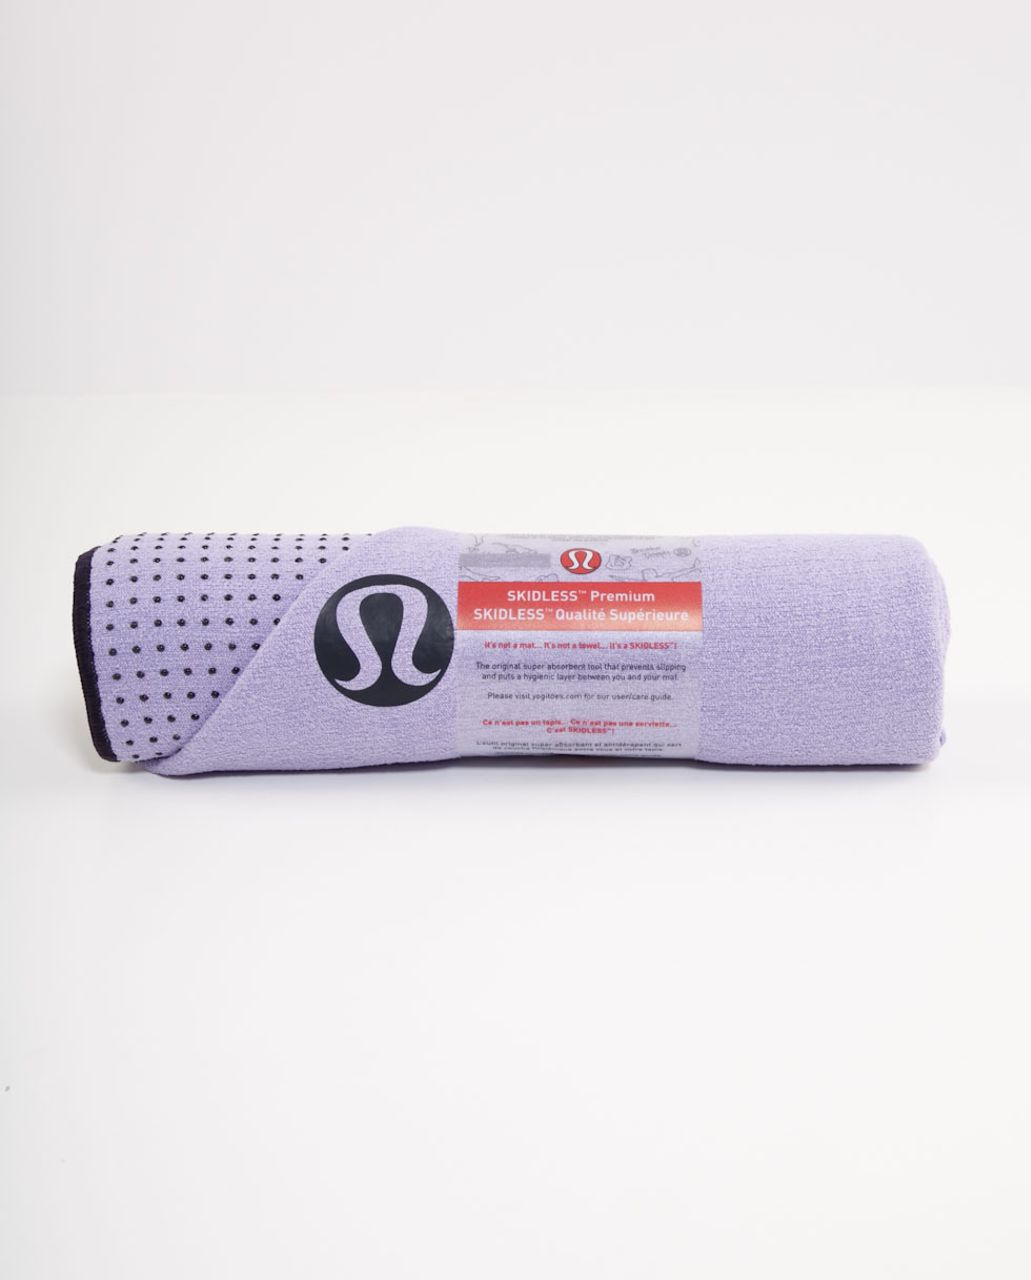 Lululemon Skidless Towel - Lilac